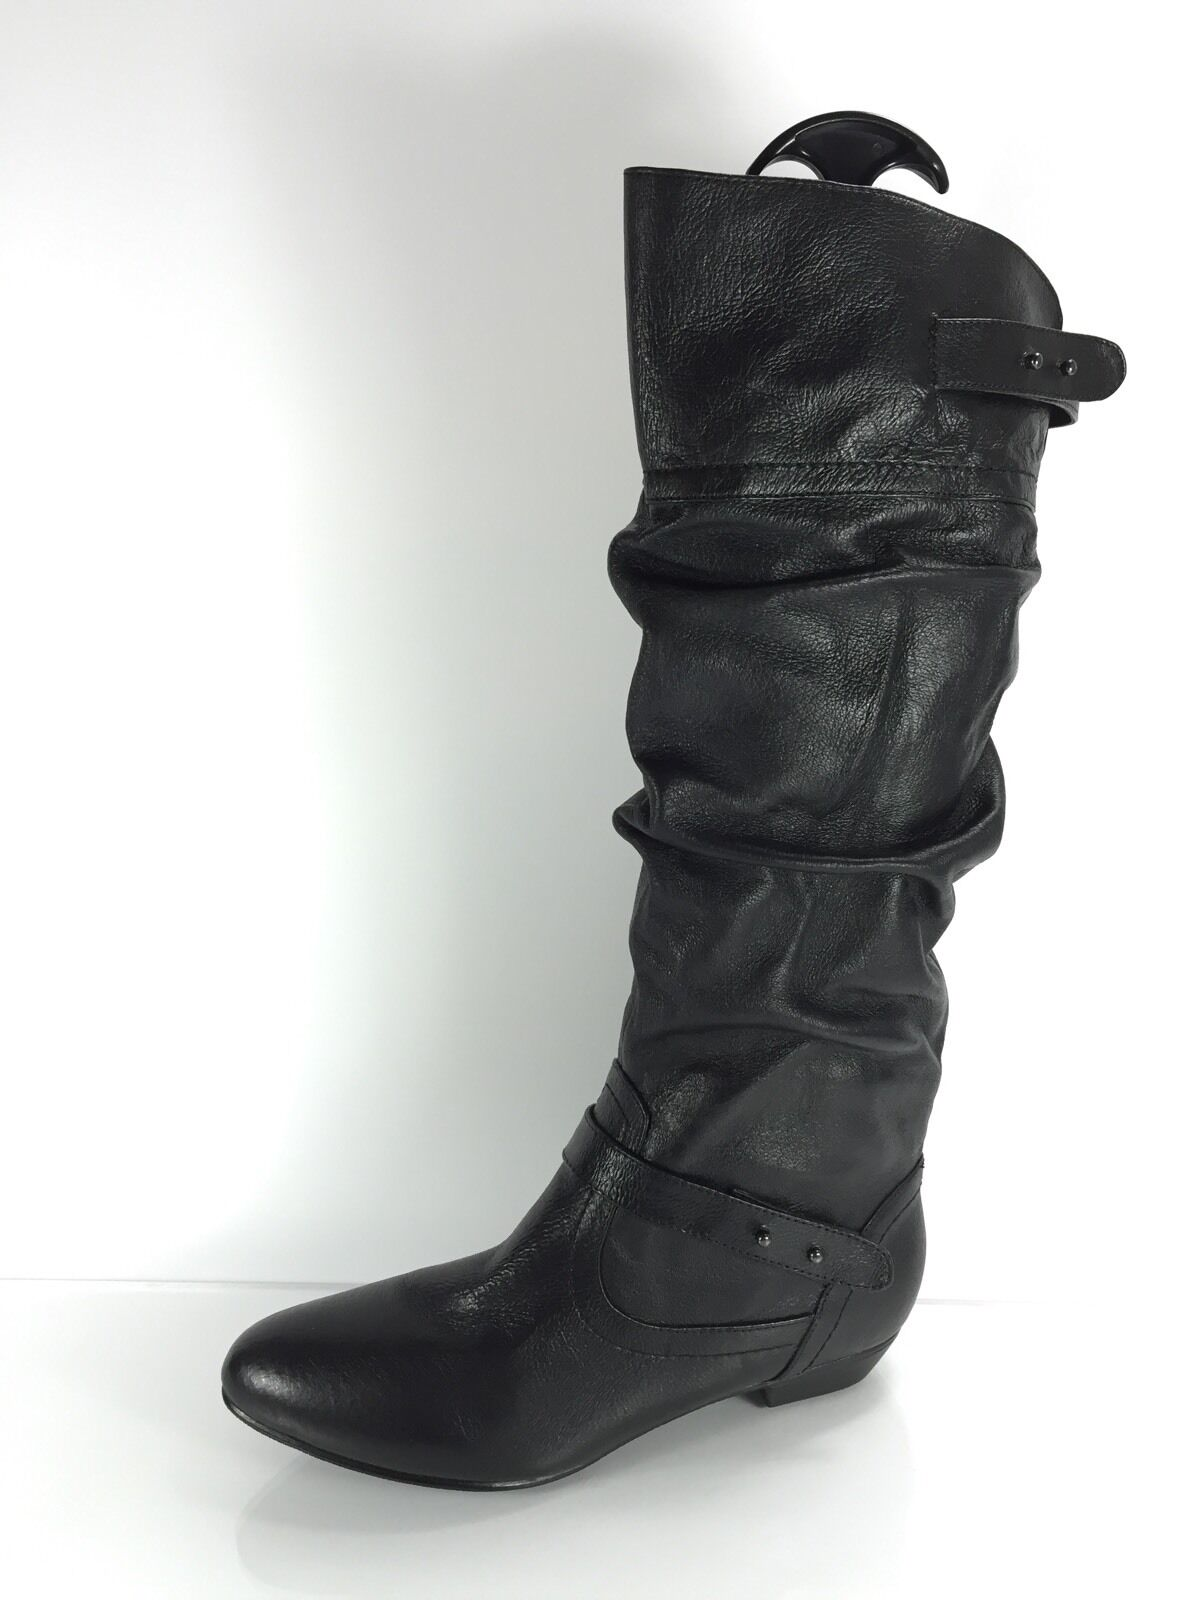 Steve Madden Womens Black Leather Knee Boots 8 M